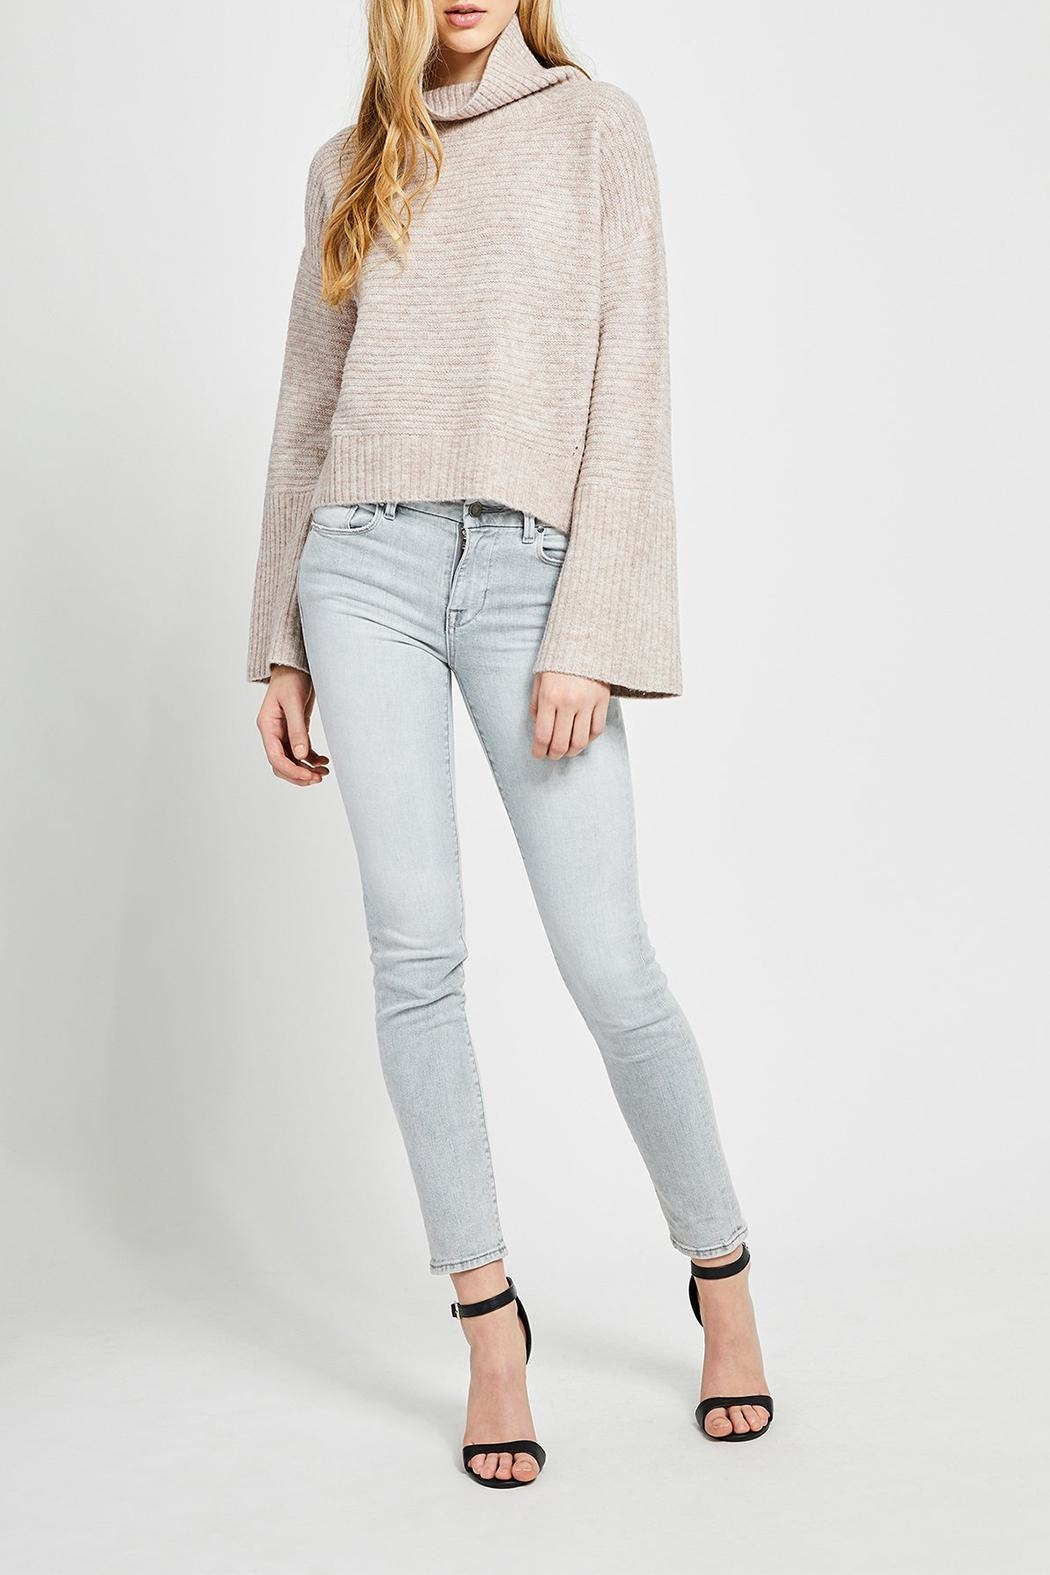 Gentle Fawn Paris Pullover - Main Image